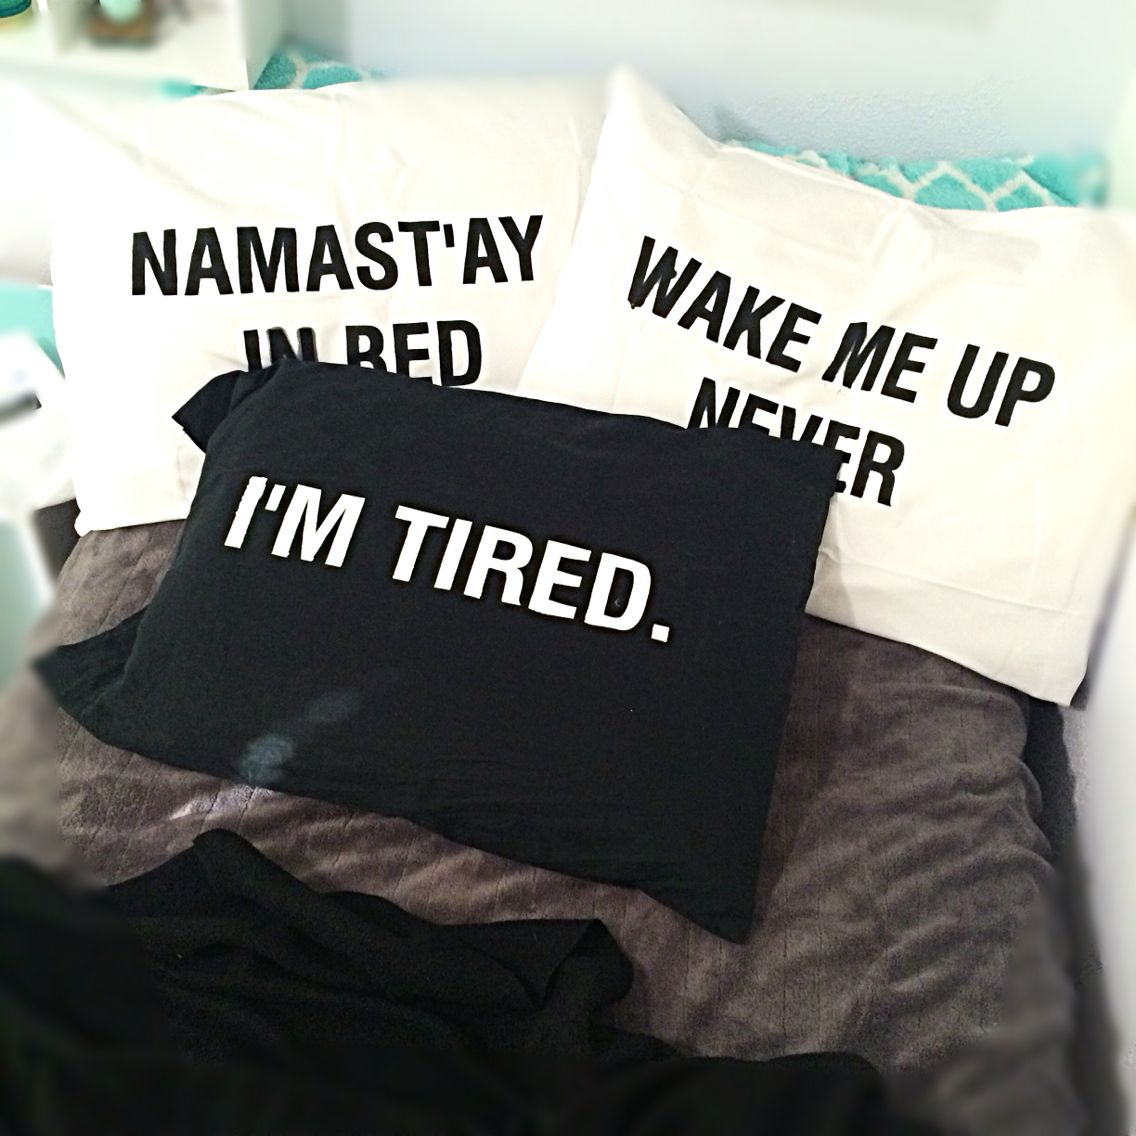 DIY Tumblr Pillow Cases NAMAST\u0027AY IN BED makes a great white elephant gift. & DIY Tumblr Pillow Cases NAMAST\u0027AY IN BED makes a great white ... pillowsntoast.com